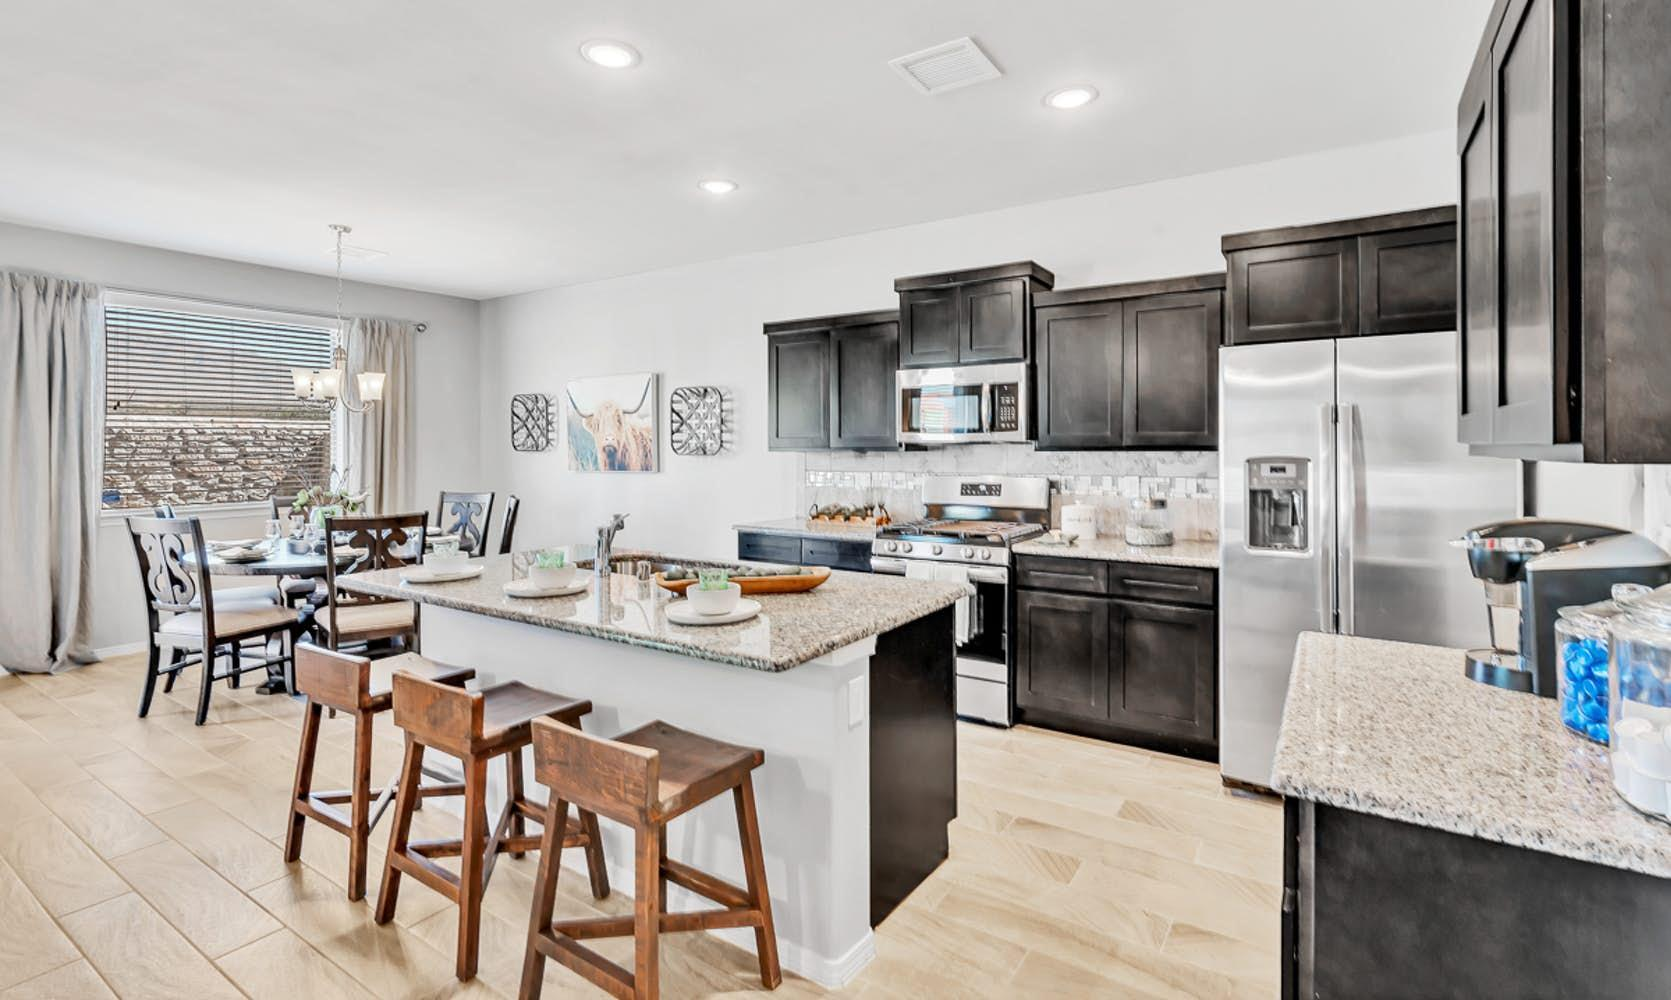 Kitchen featured in the Larue By Las Cruces in Las Cruces, NM